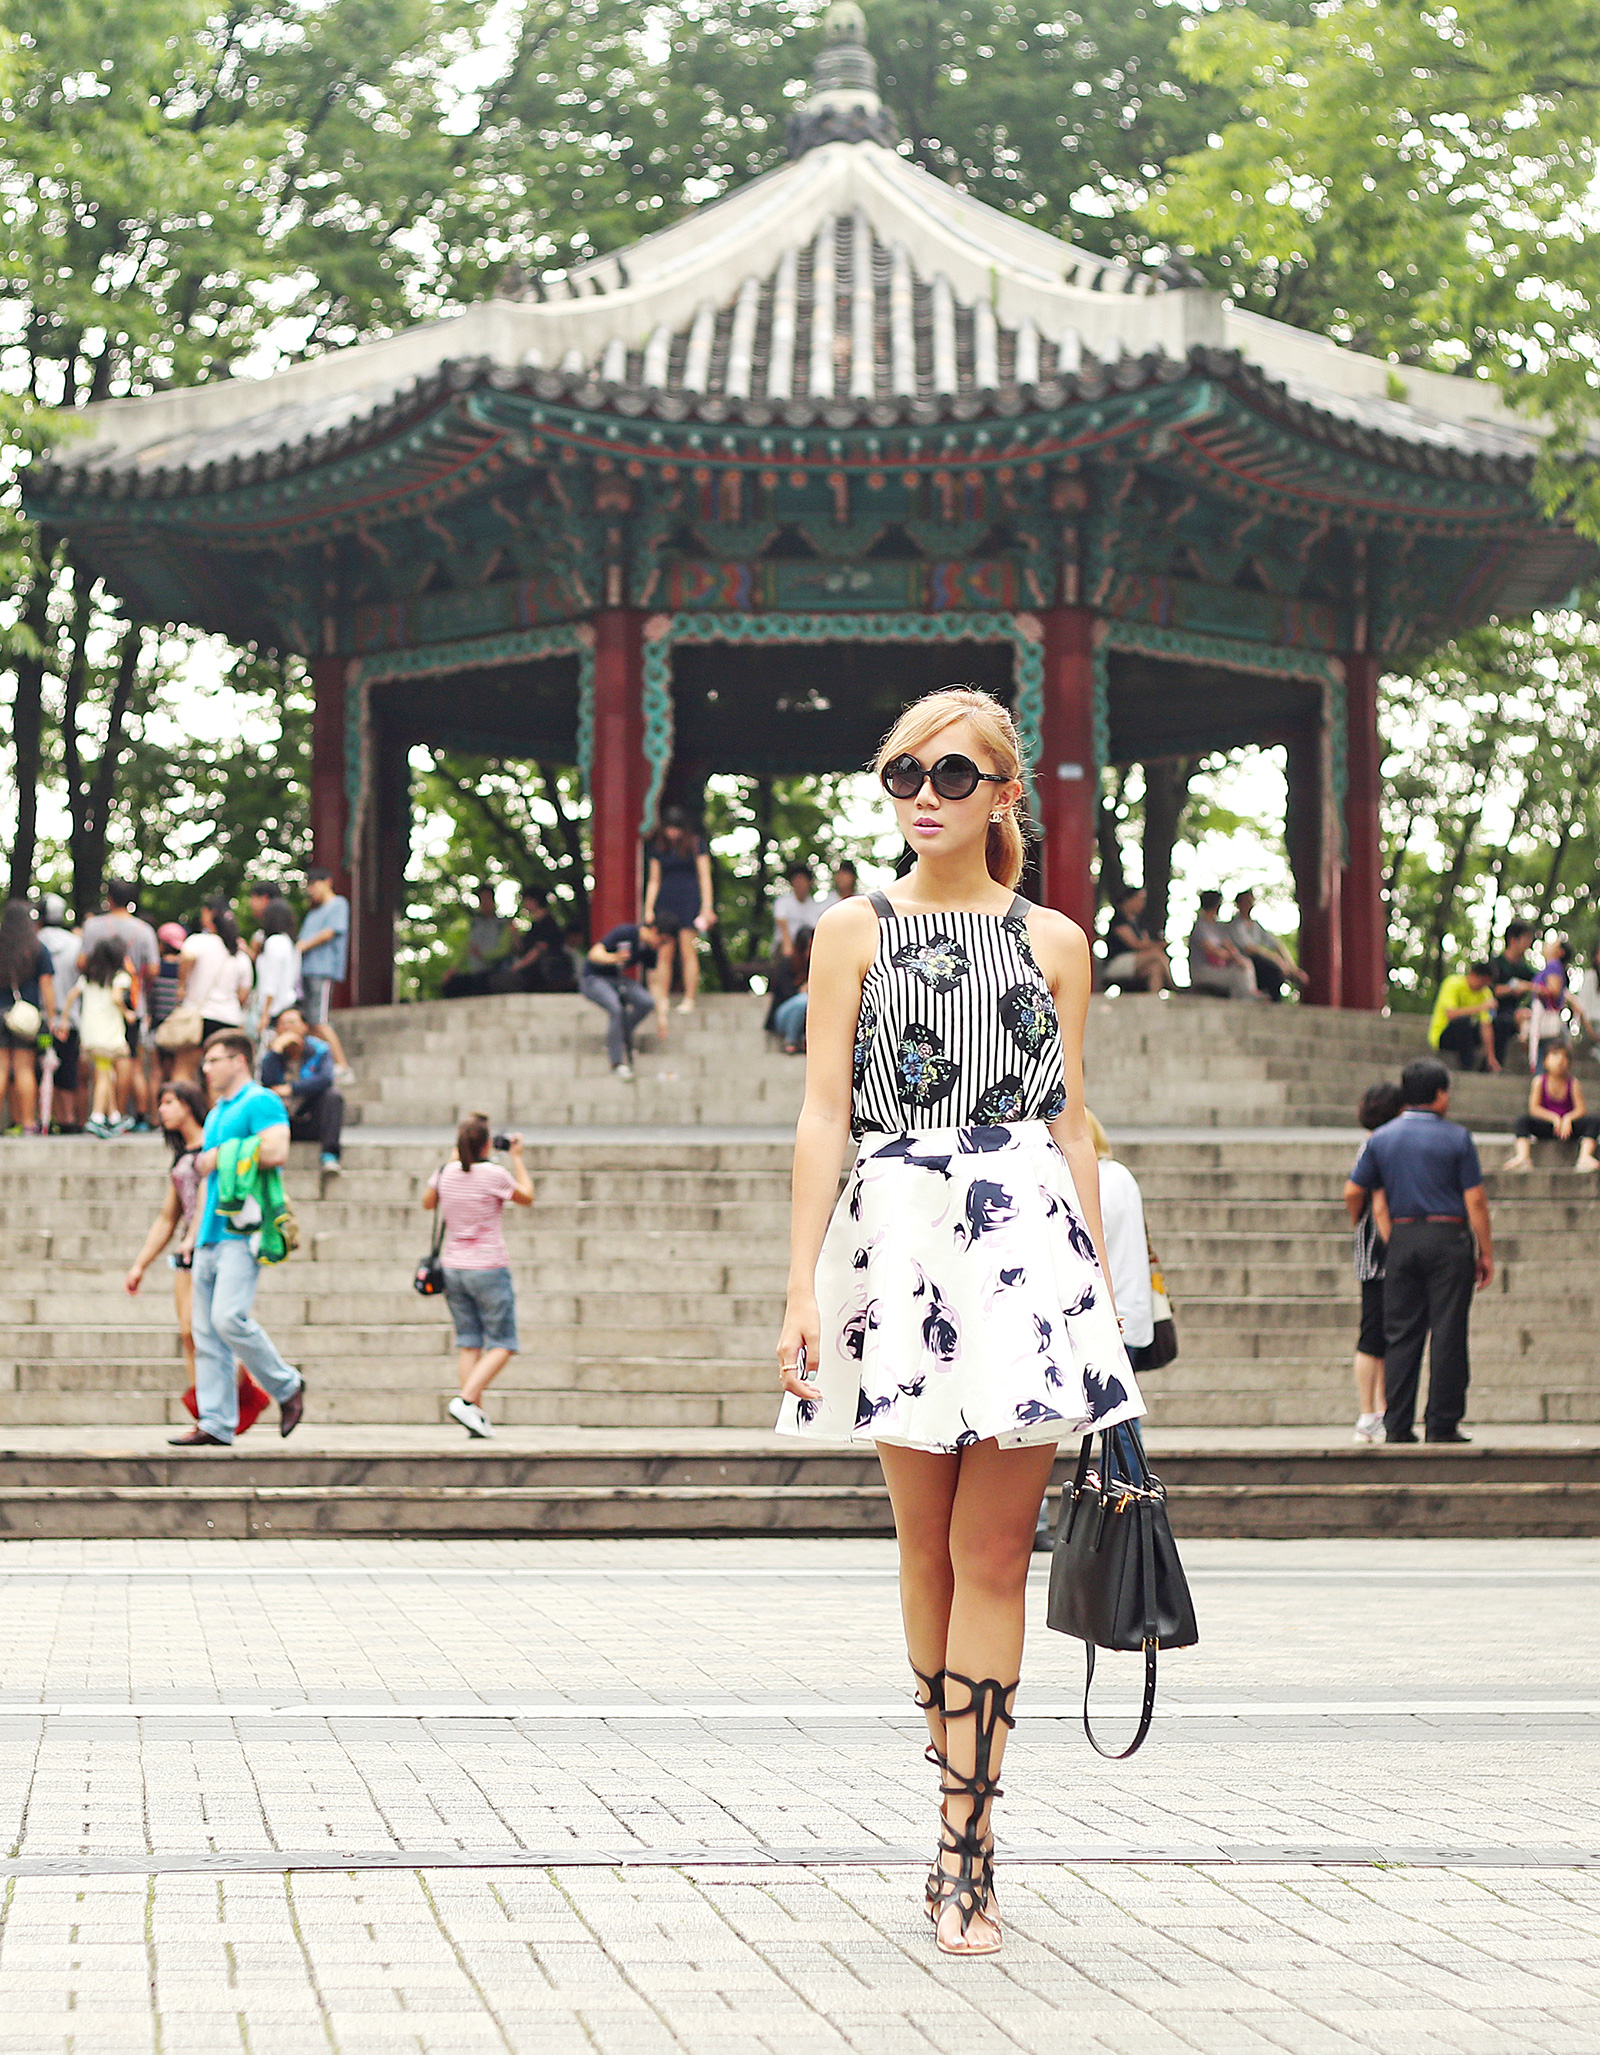 Seoul Tower | itscamilleco.com